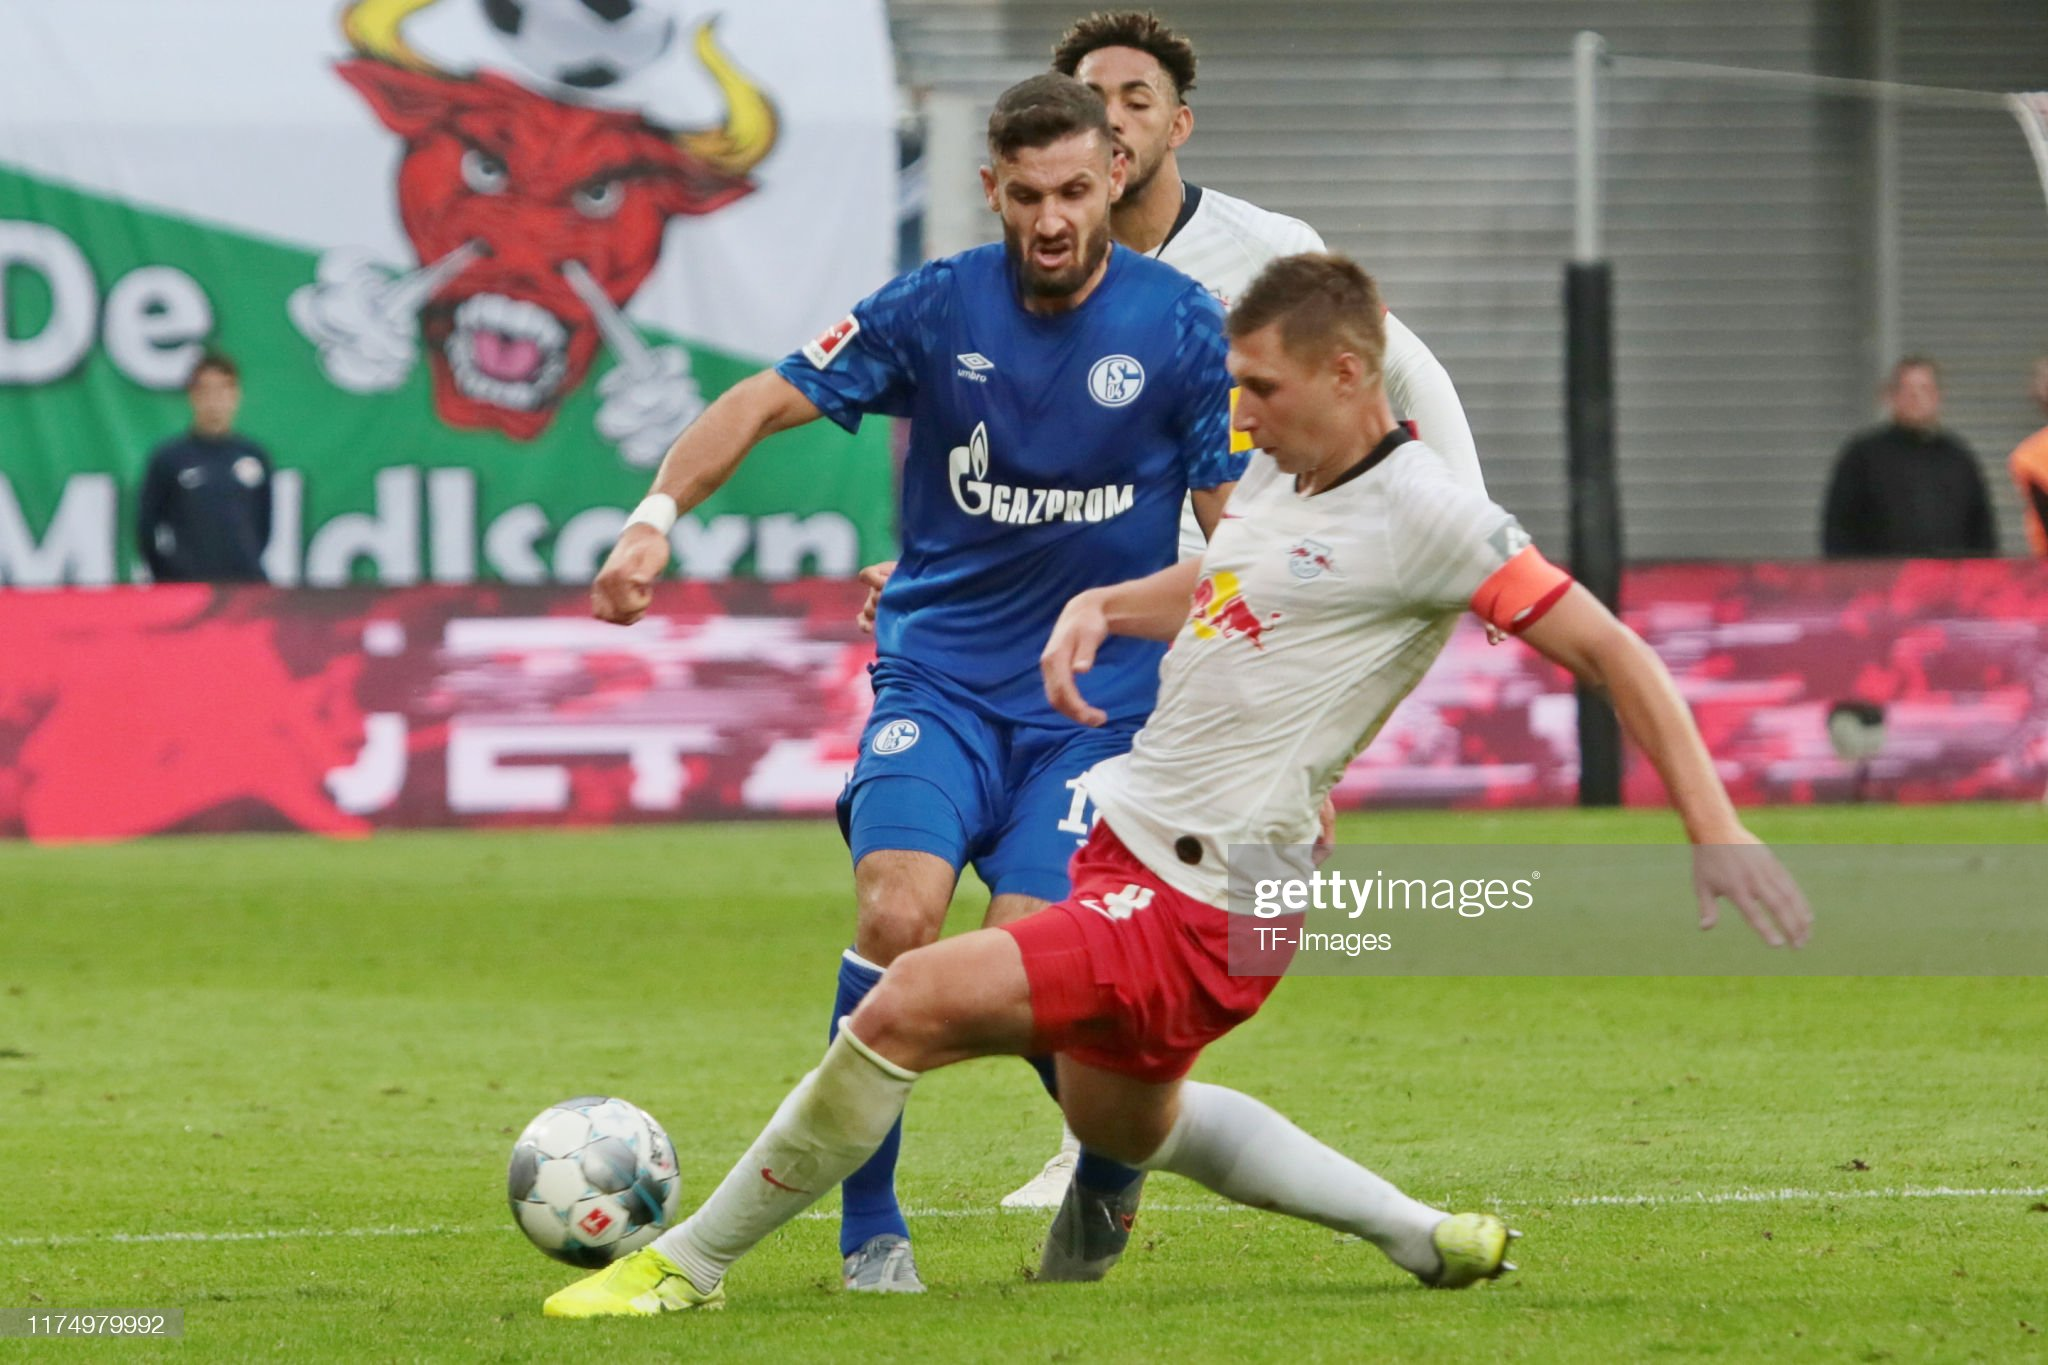 Schalke v RB Leipzig preview, prediction and odds